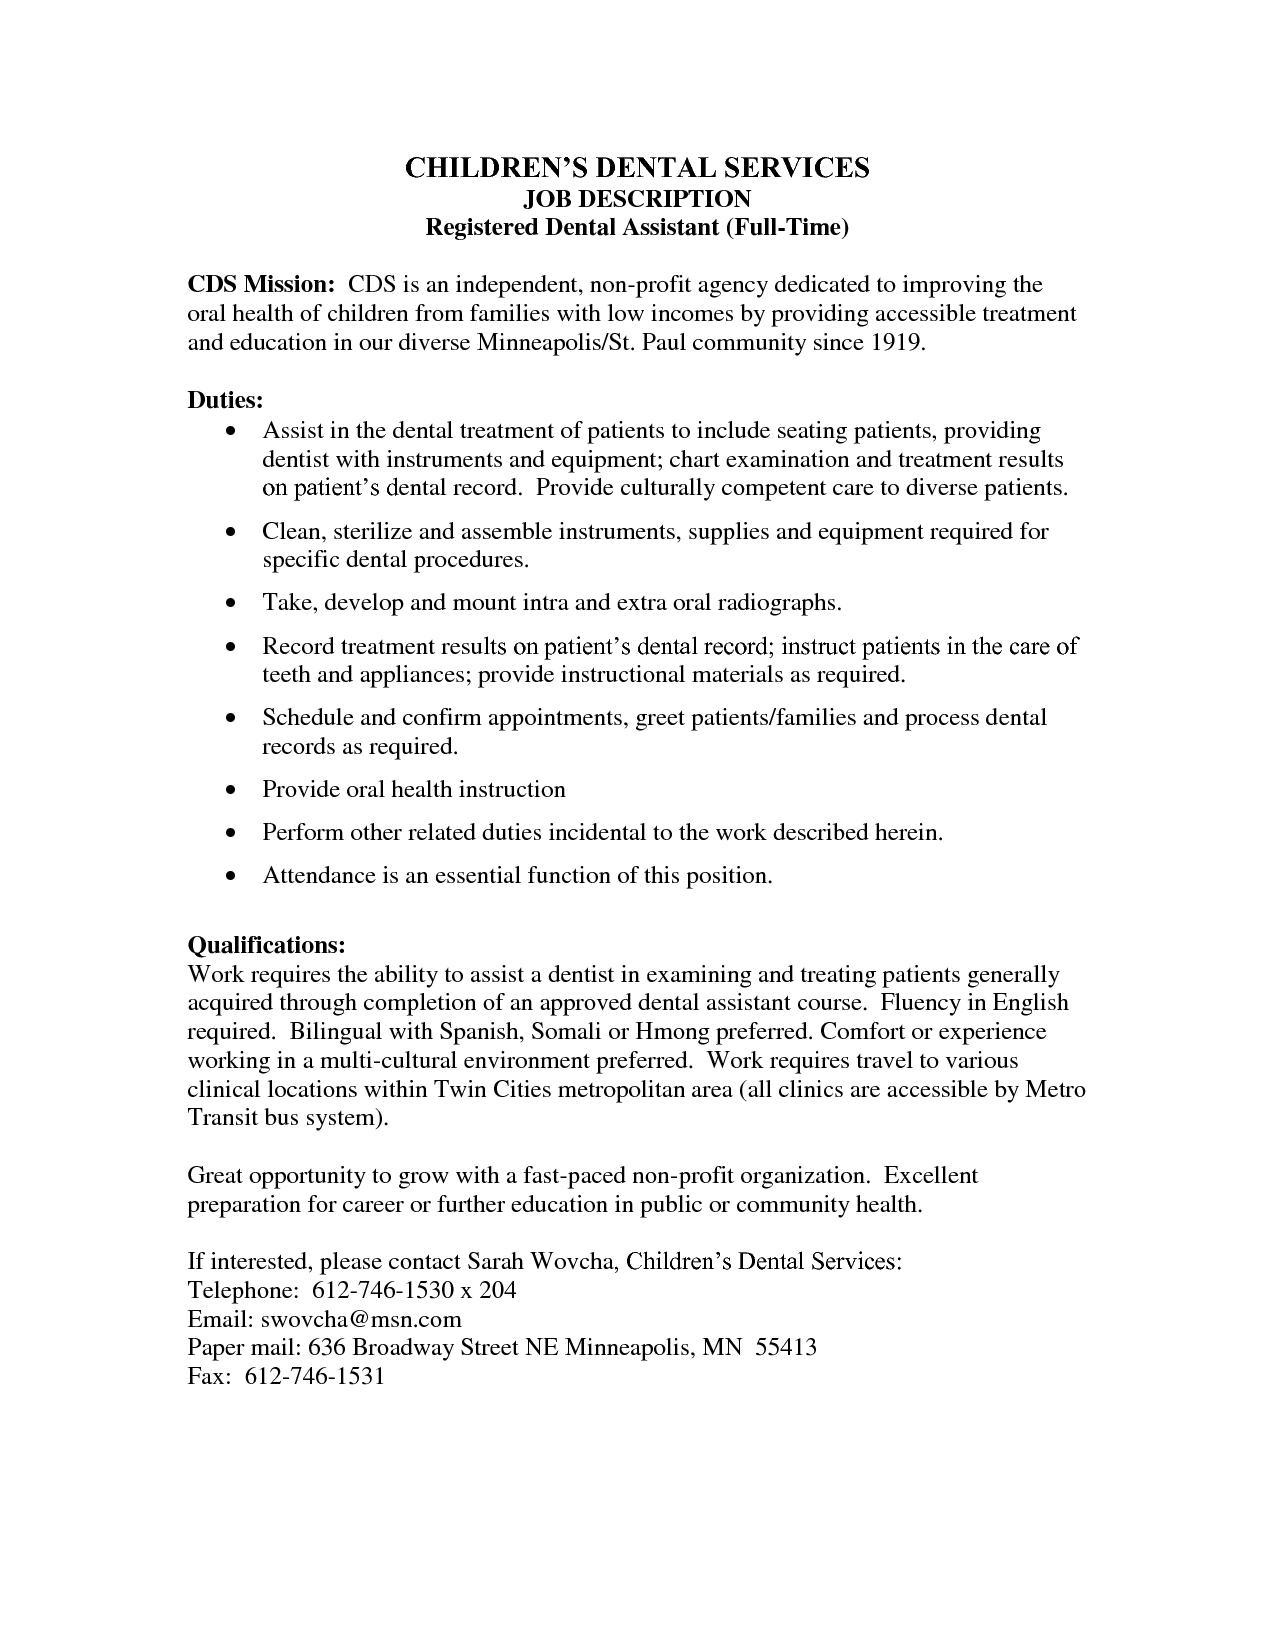 Superb Dental Assistant Skills And Qualifications Registered Dental Assistant Job  Description